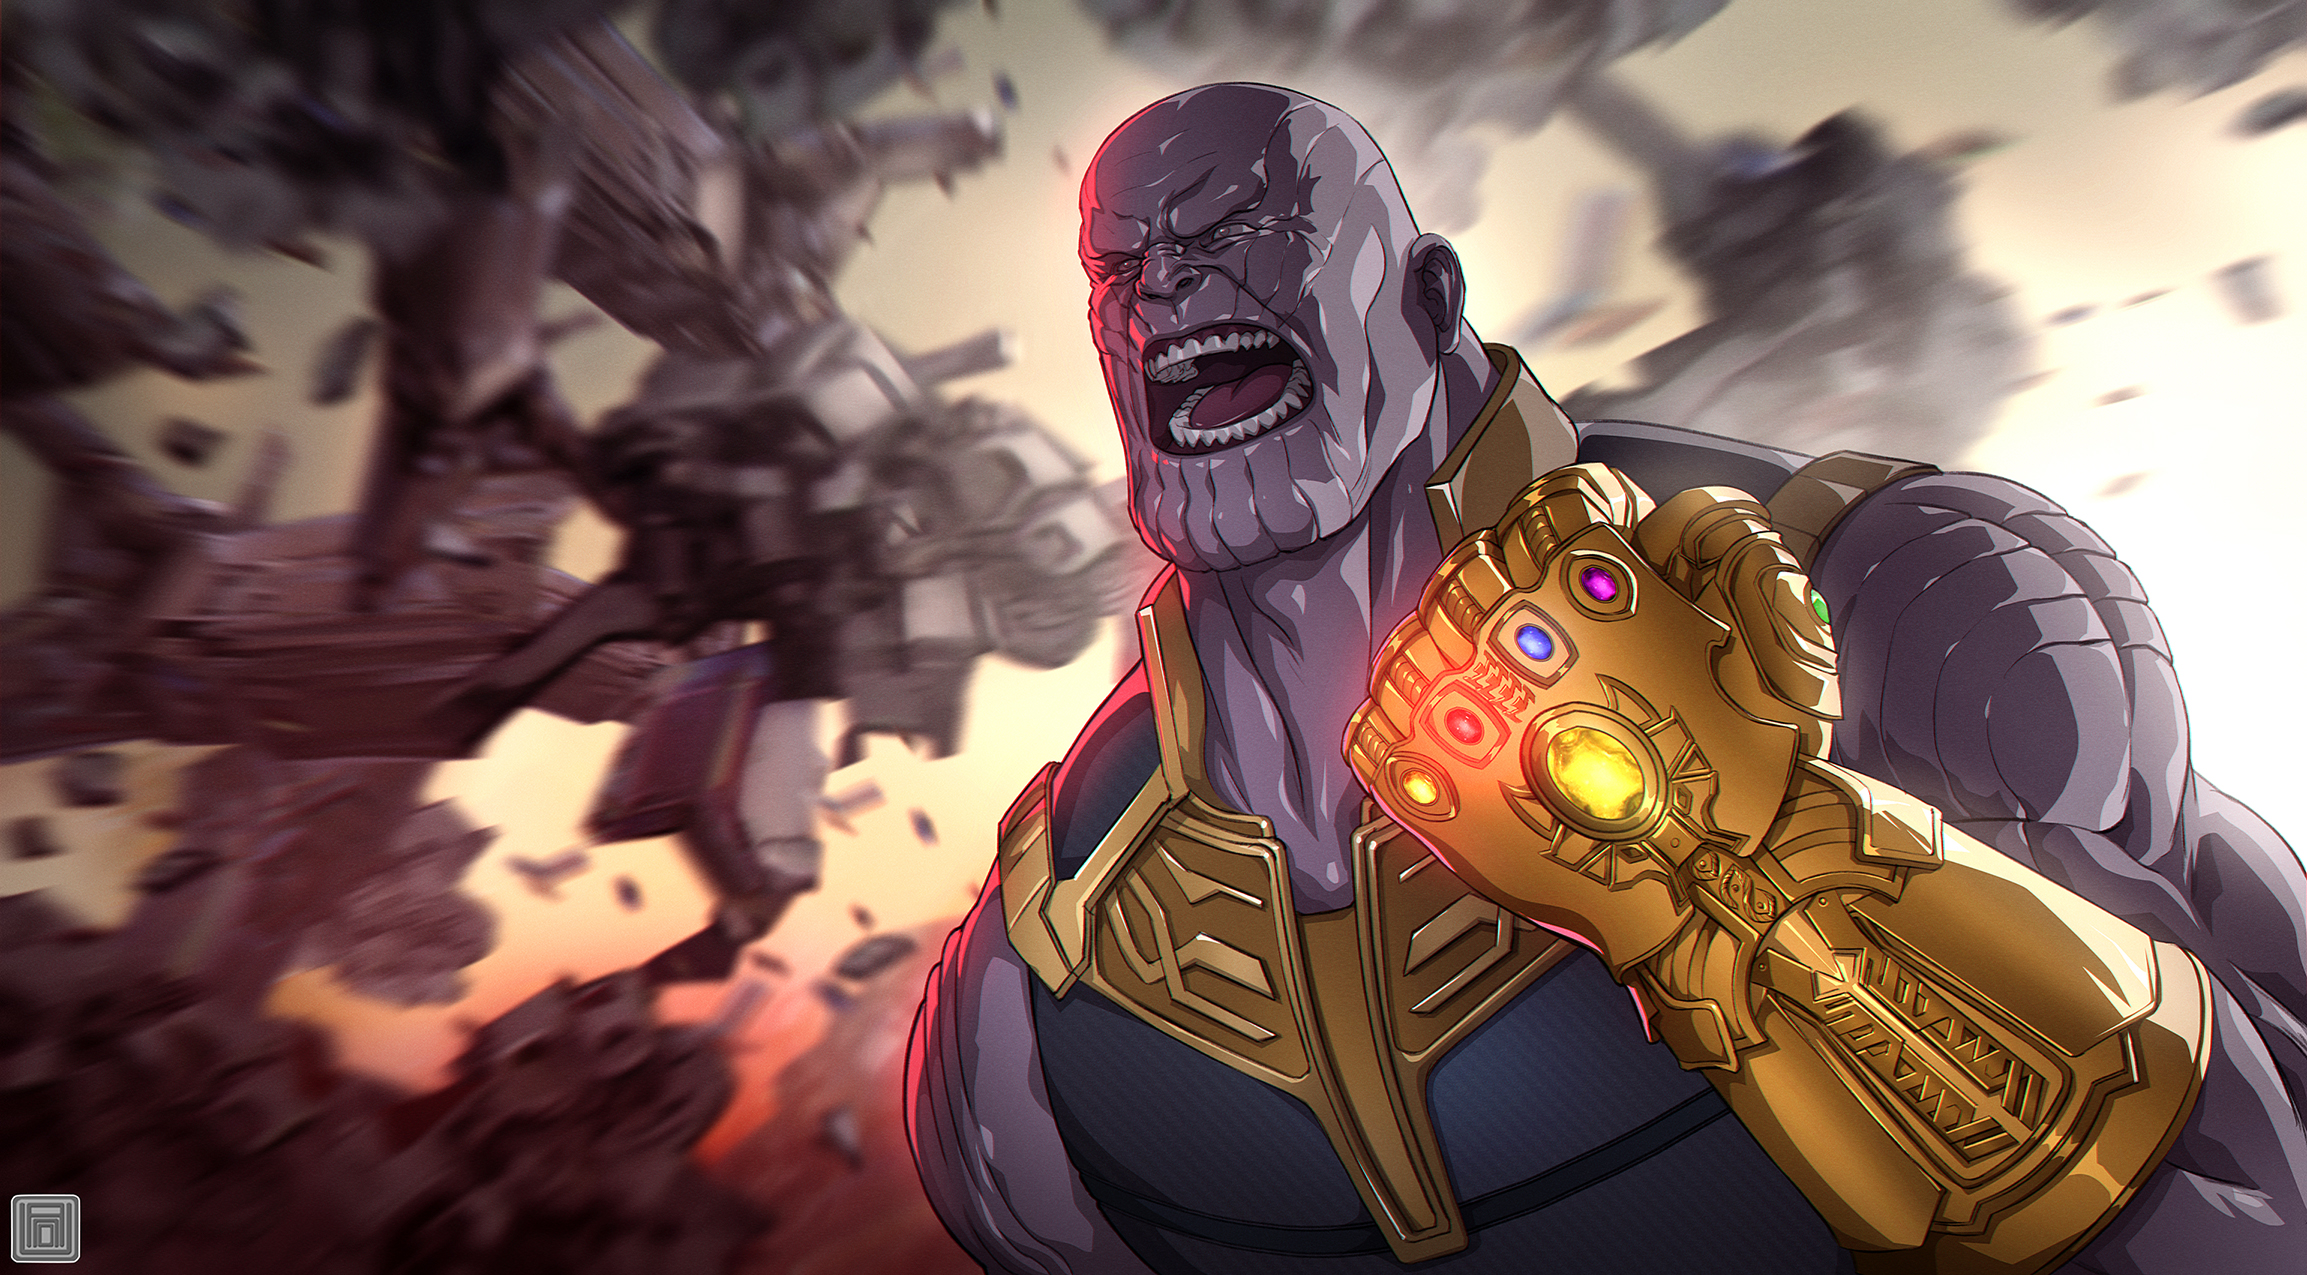 Thanos Marvel 205154 Hd Wallpaper Backgrounds Download